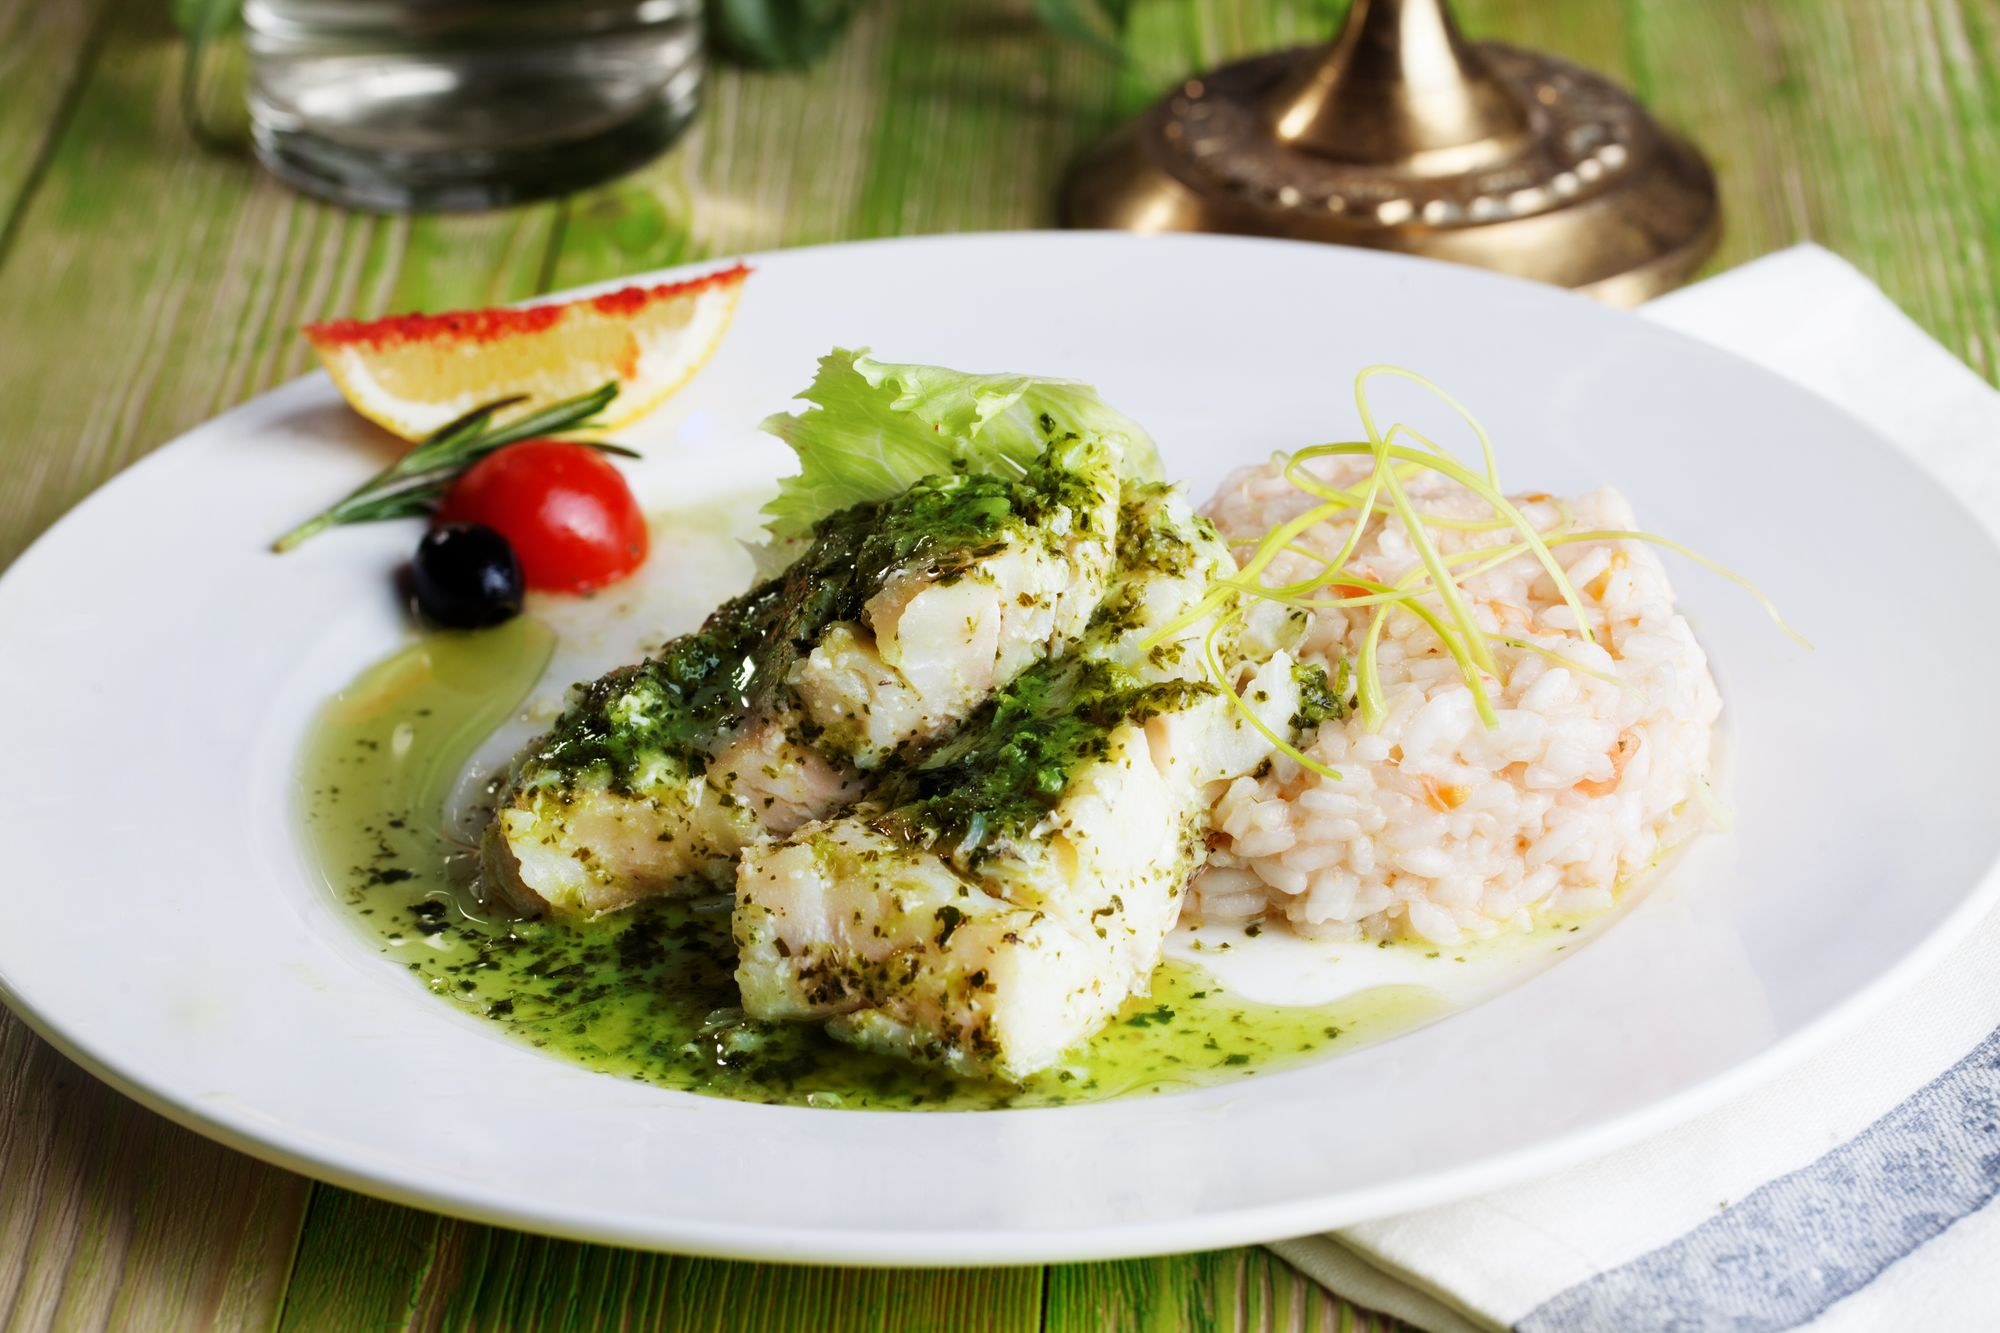 Olive and Pesto Crusted Fish